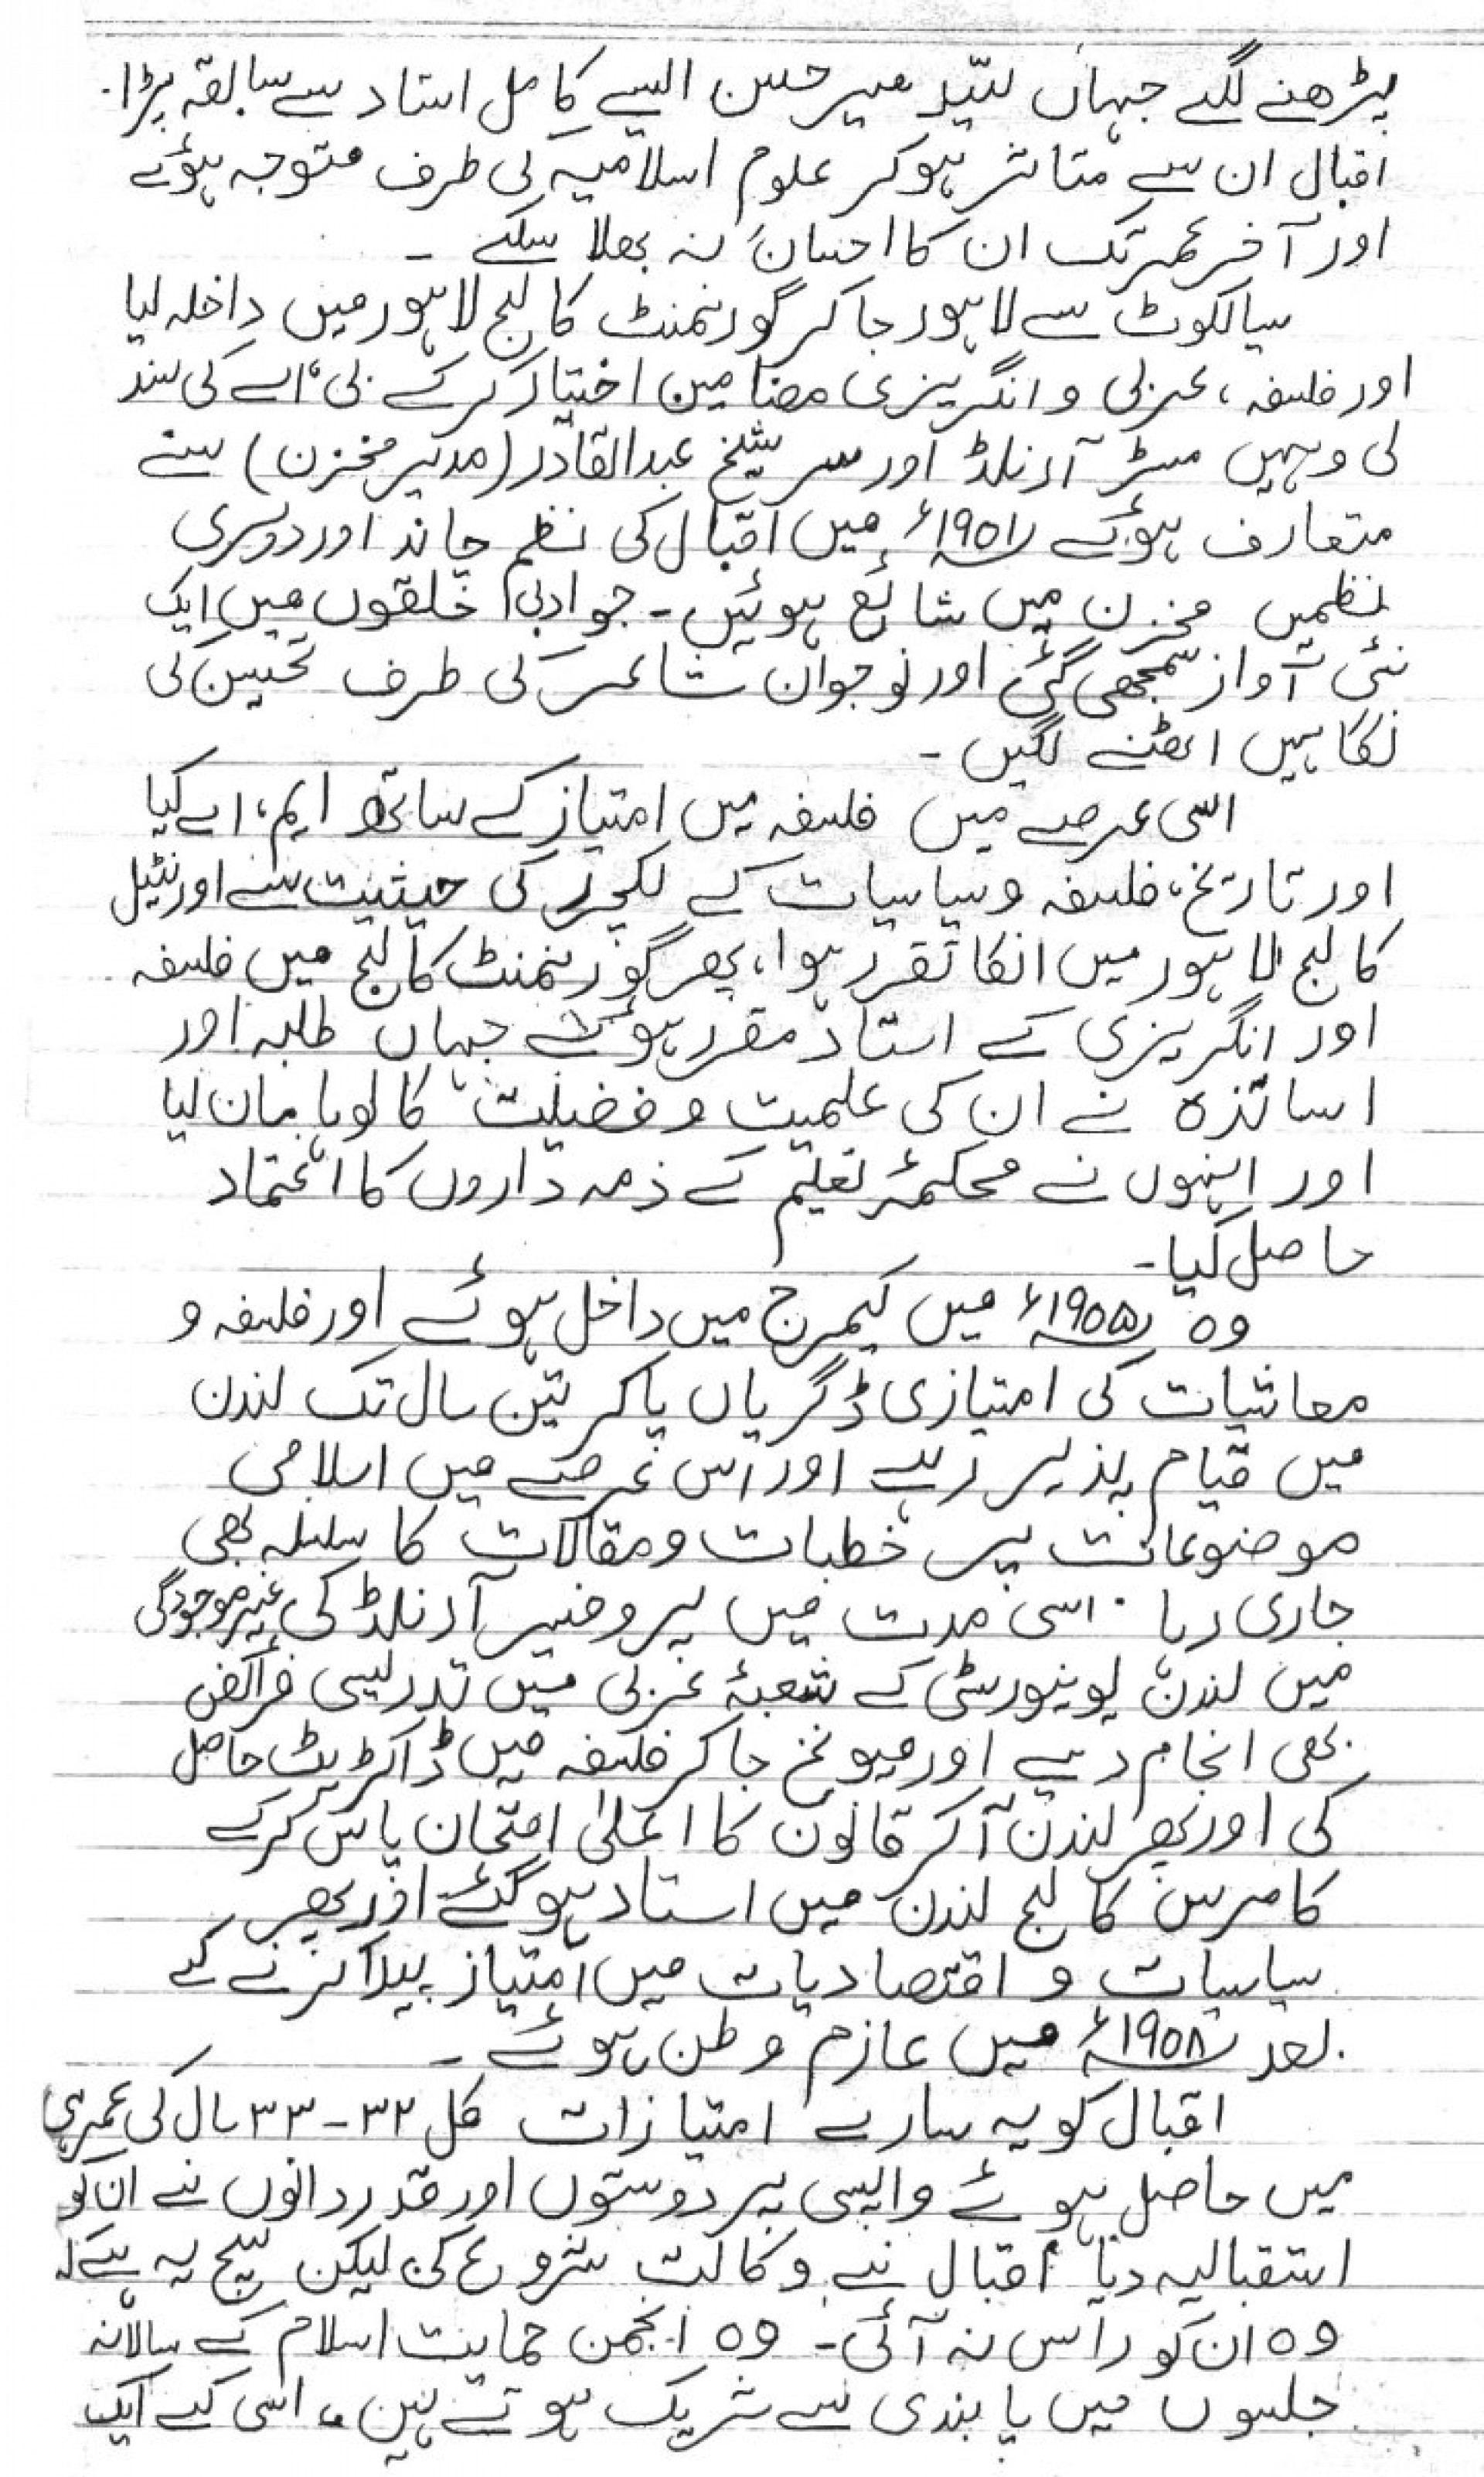 008 Jpg Essay Example Urdu Allama Dreaded Iqbal On In For Class 10 With Poetry Ka Shaheen Headings And 1920